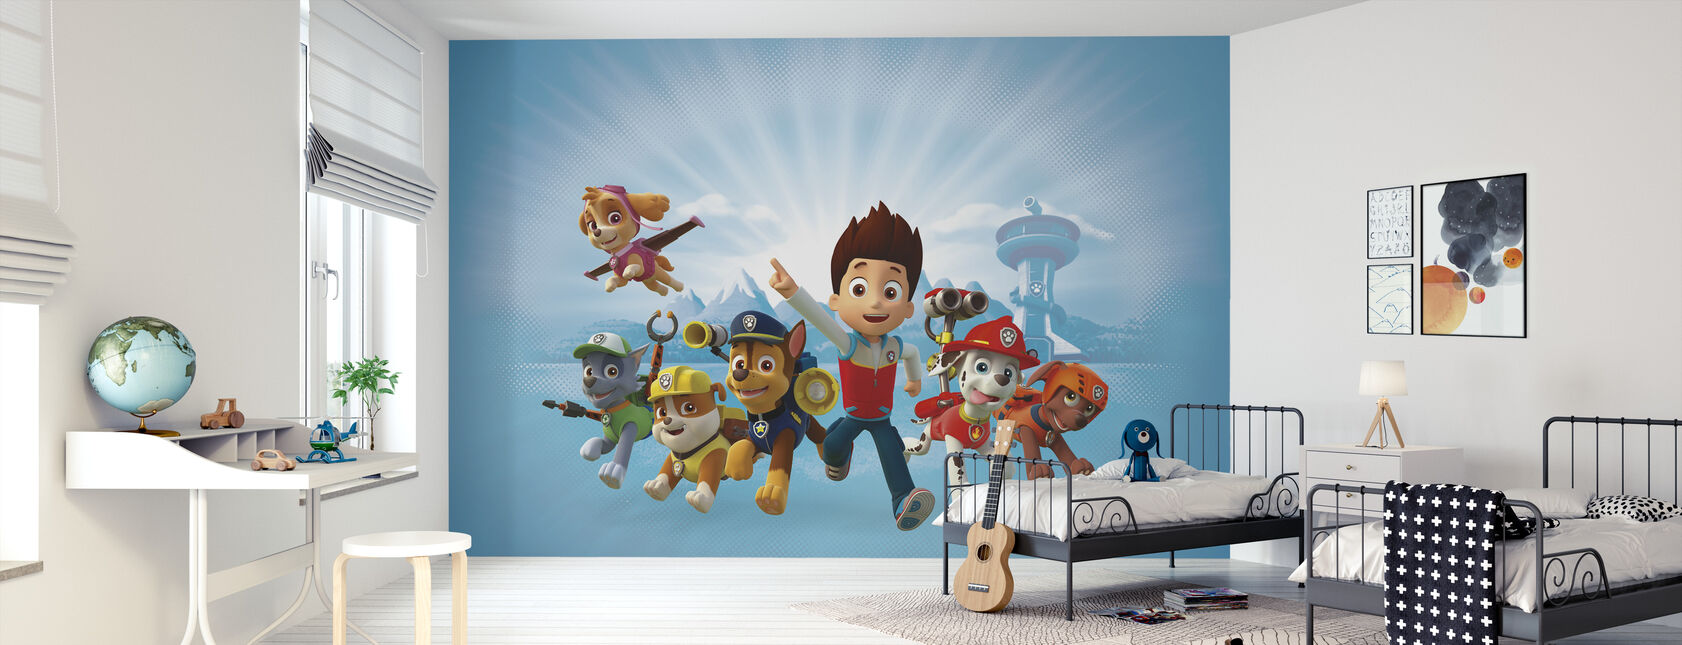 PAW Patrol - PAW Patrol is on a roll - Wallpaper - Kids Room